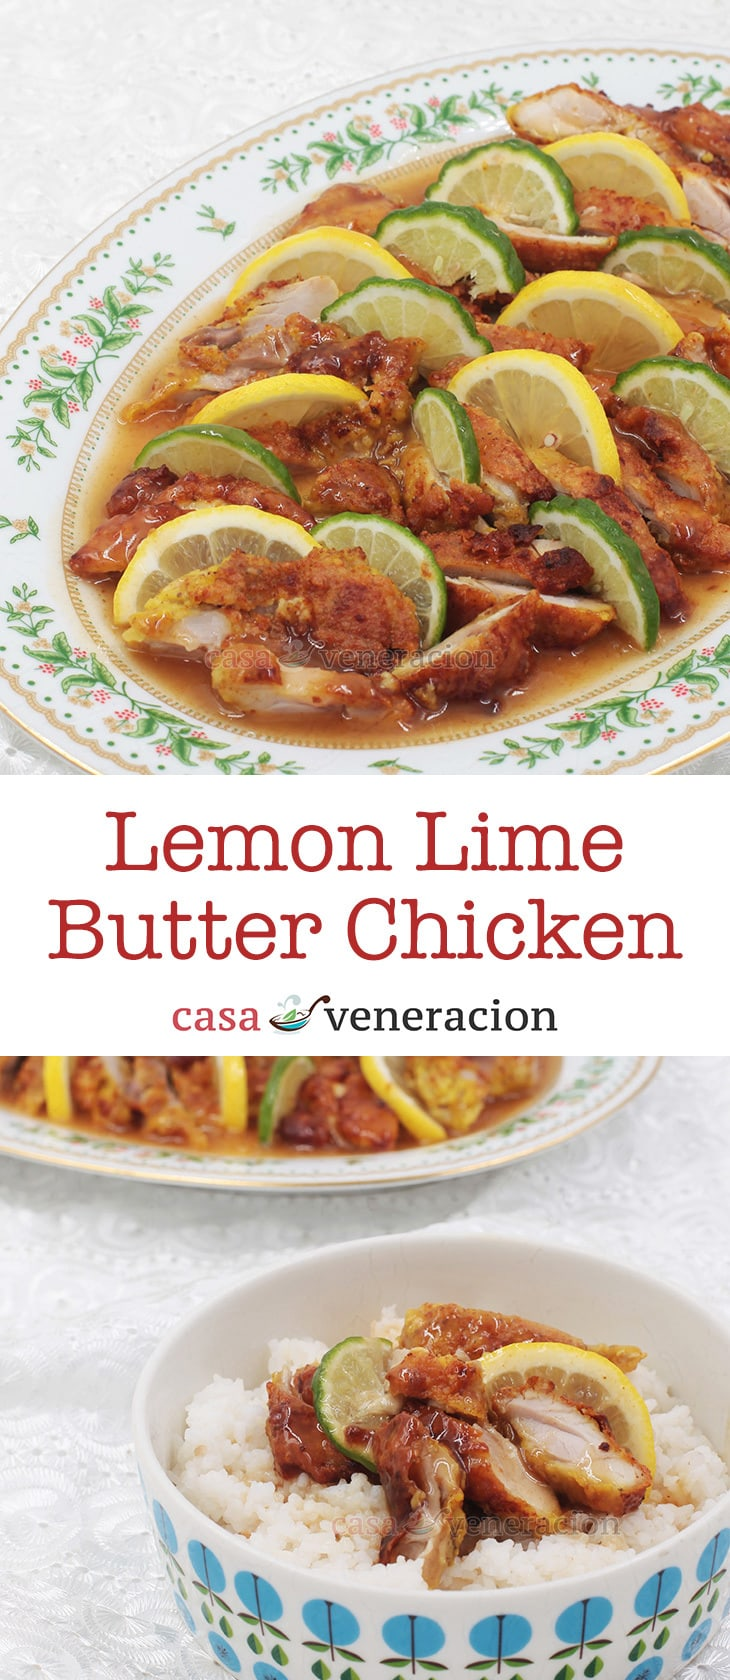 To cook lemon lime butter chicken, lightly floured chicken fillets were fried and smothered with sweetened lemon-lime sauce enriched with dollops of butter.